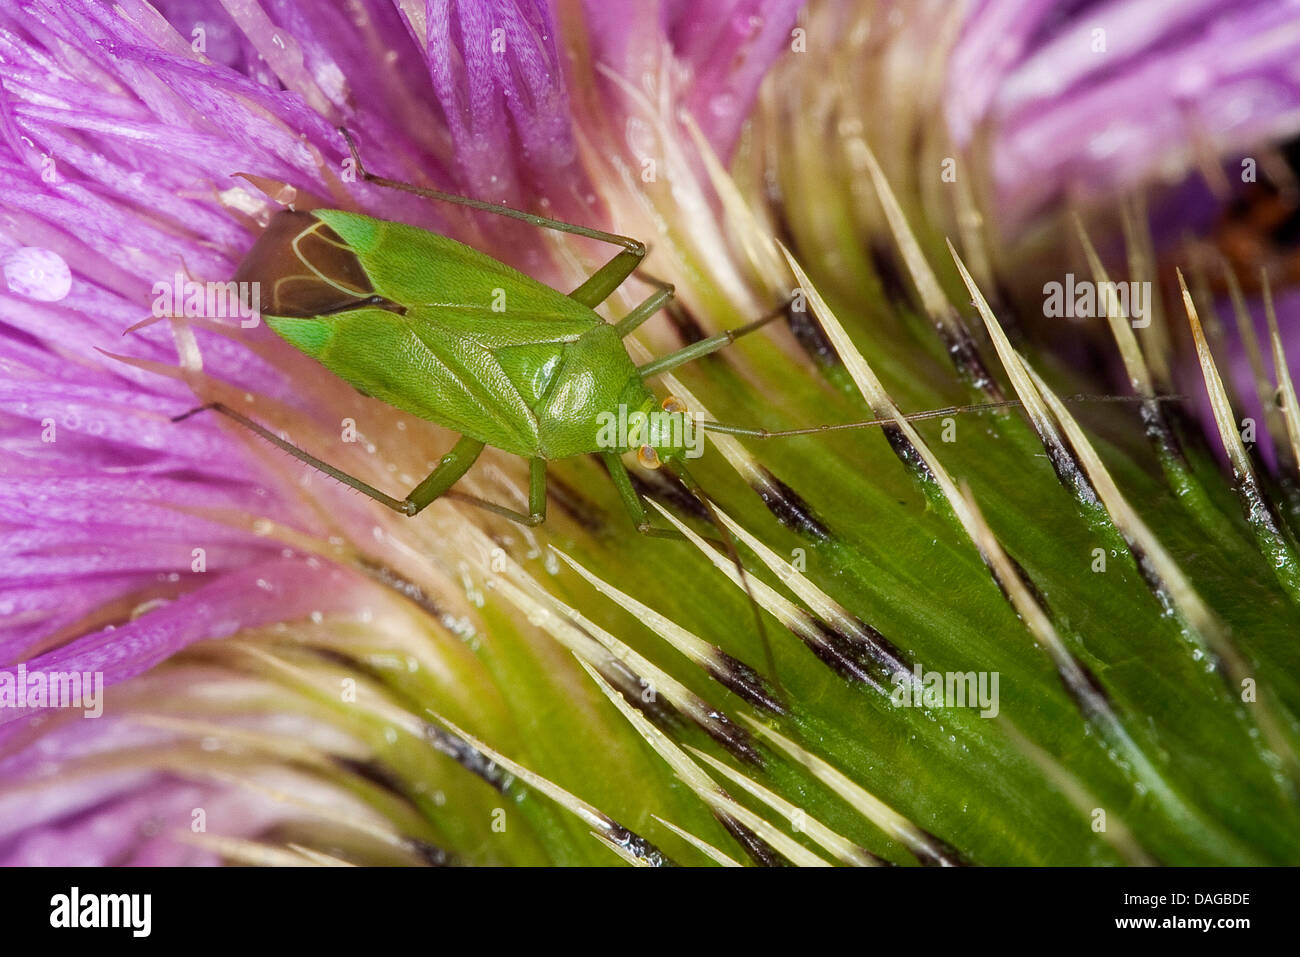 capsid bug (Calocoris affinis), at a thistle, Germany - Stock Image